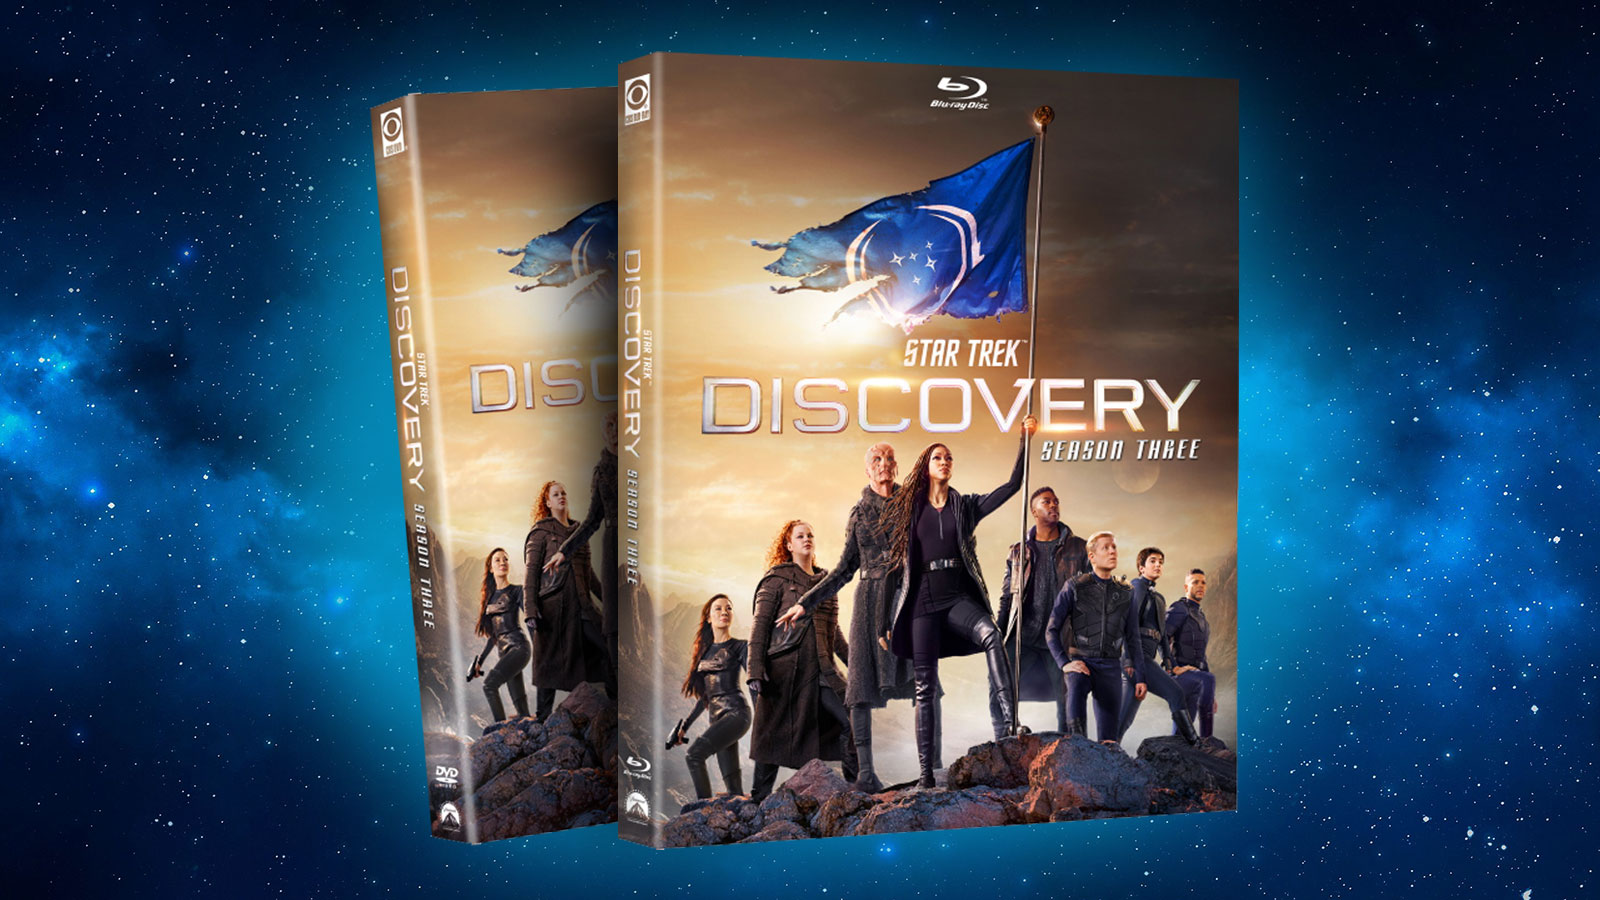 Star Trek: Discovery - Season 3 Coming To Blu-Ray In July, Complete List Of Special Features